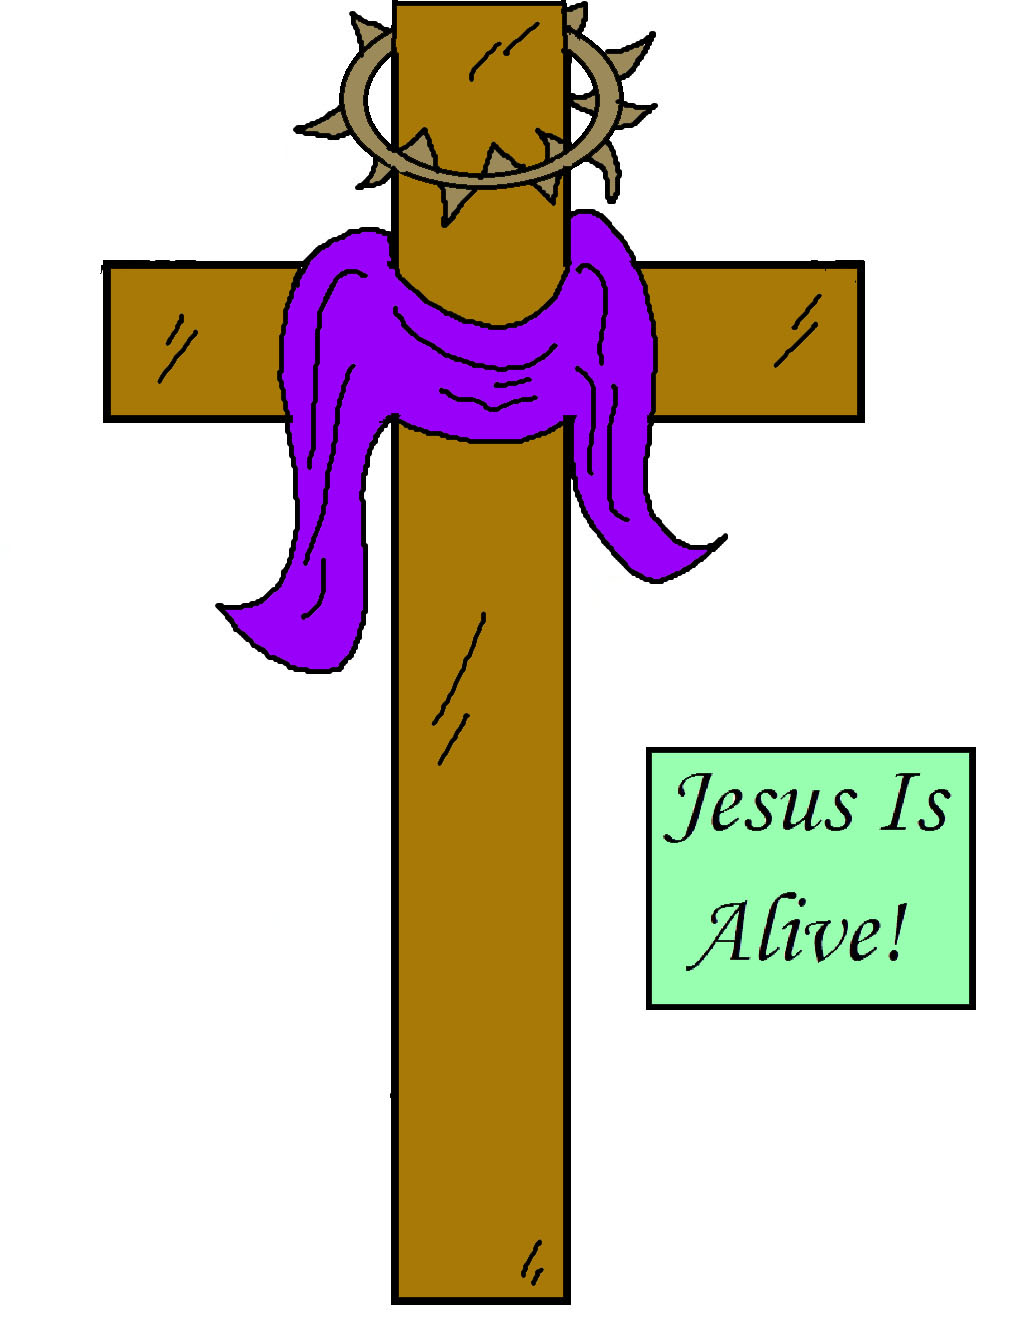 Easter sunday school crafts for kids easter crafts for sunday school cutout pictures jesus is alive negle Image collections